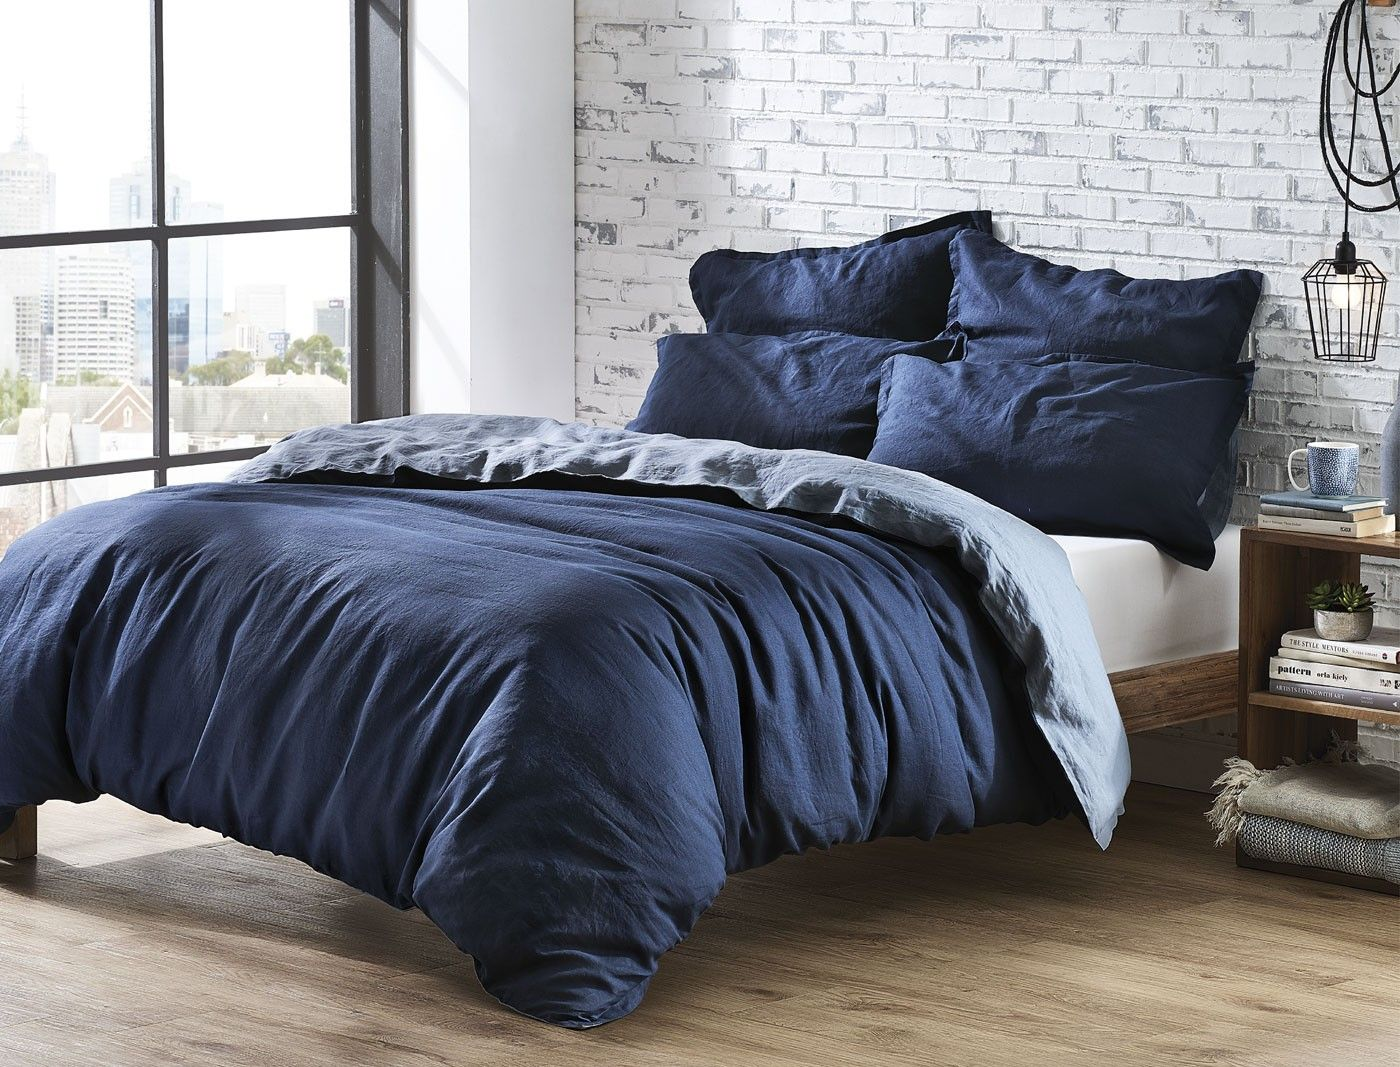 Schlafzimmer Veneto Simple And Contemporary The Veneto Blue Linen Quilt Cover